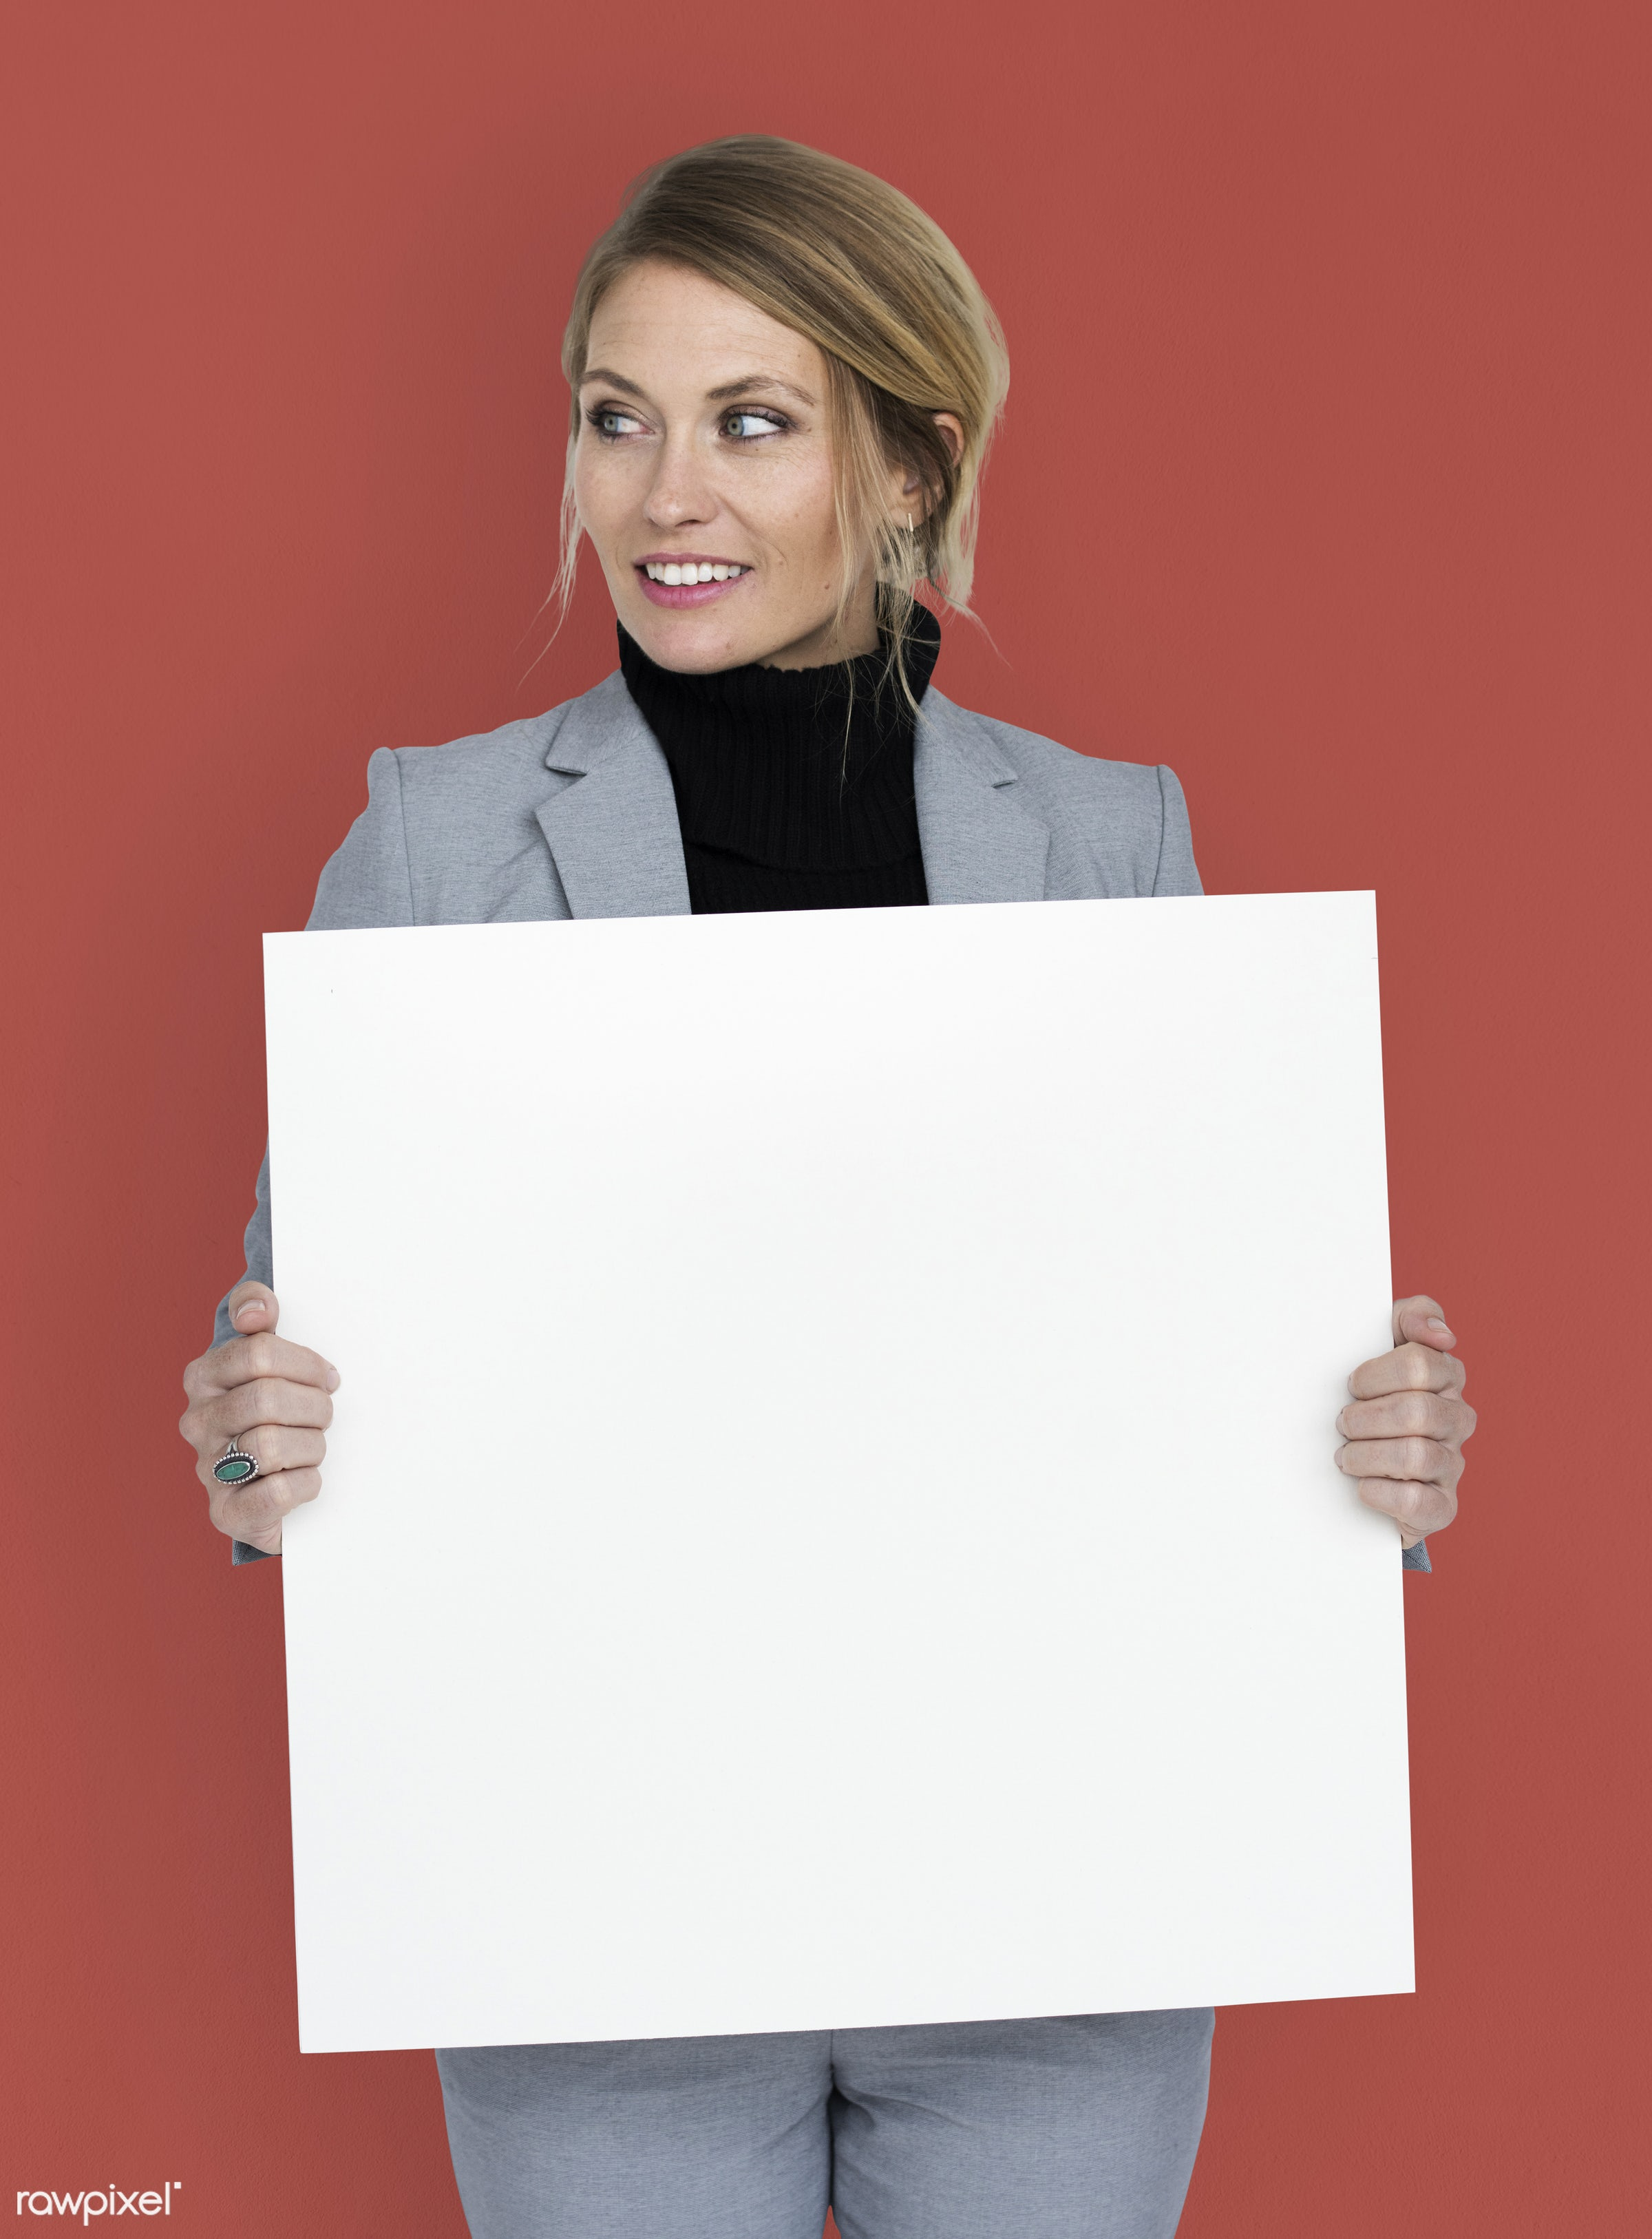 studio, expression, person, holding, people, placard, woman, smile, cheerful, smiling, orange, isolated, happiness,...